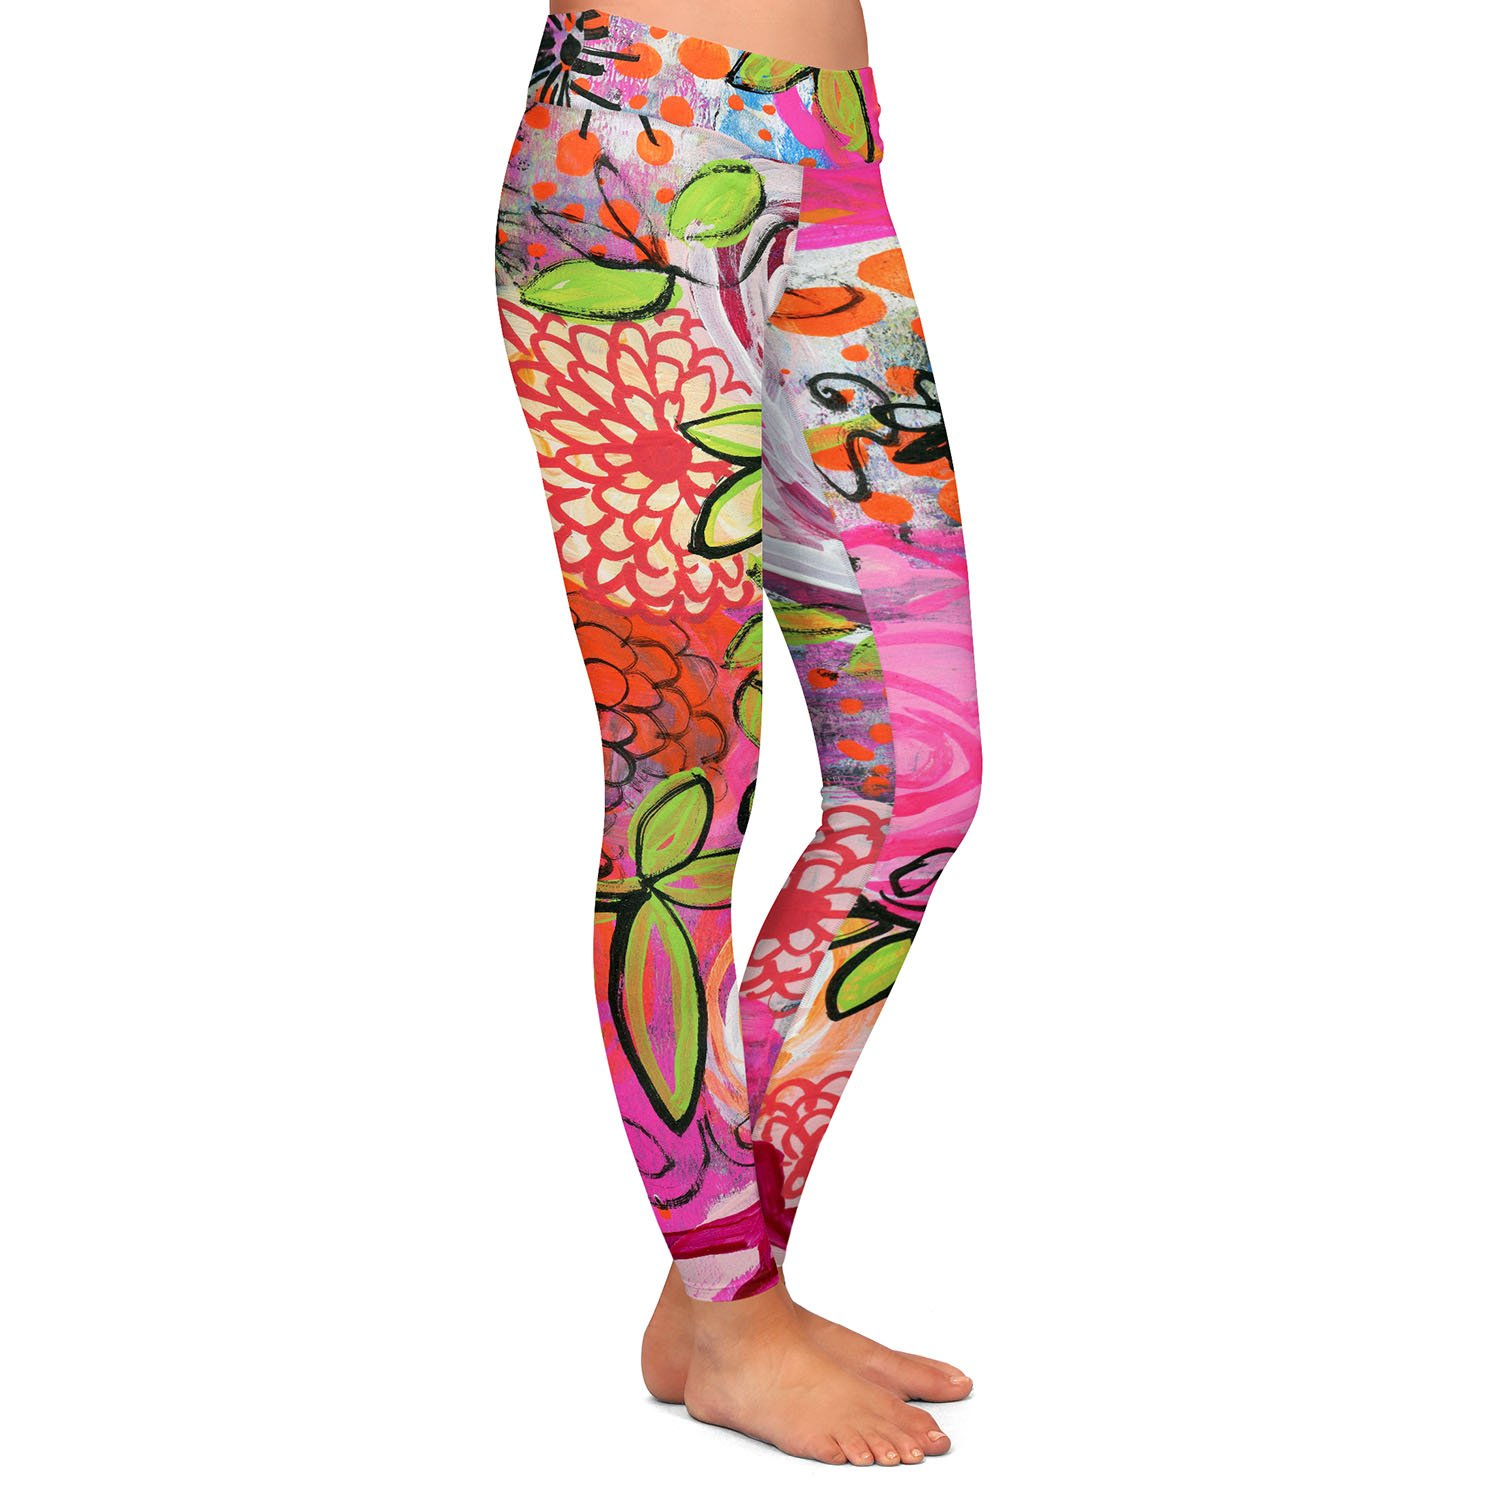 Athletic Yoga Leggings from DiaNoche Designs by Robin Mead Eloquent 44